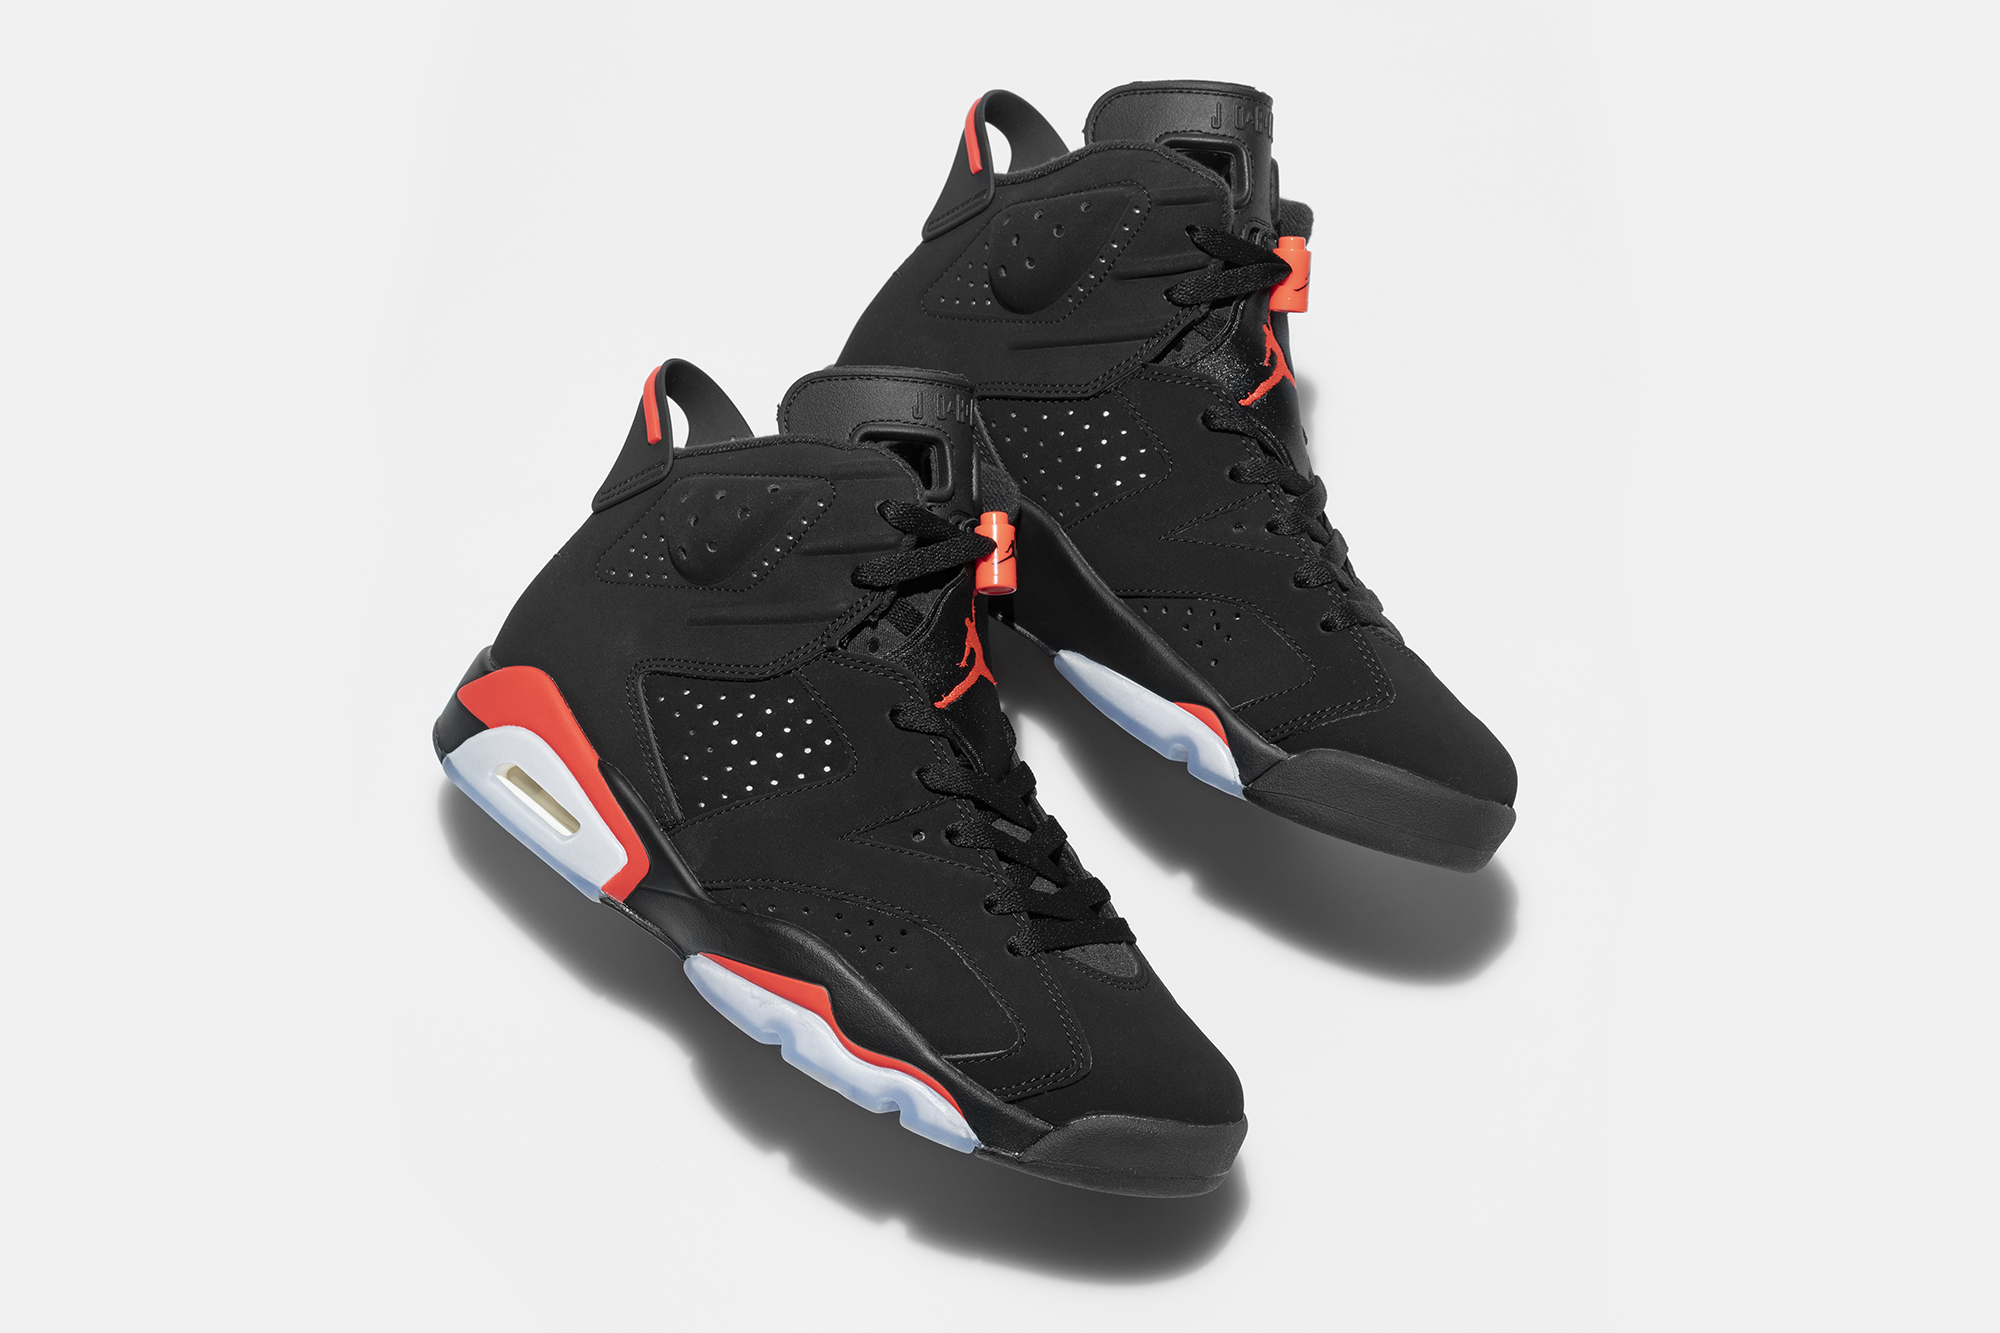 Air Jordan VI Retro OG 'Infrared'